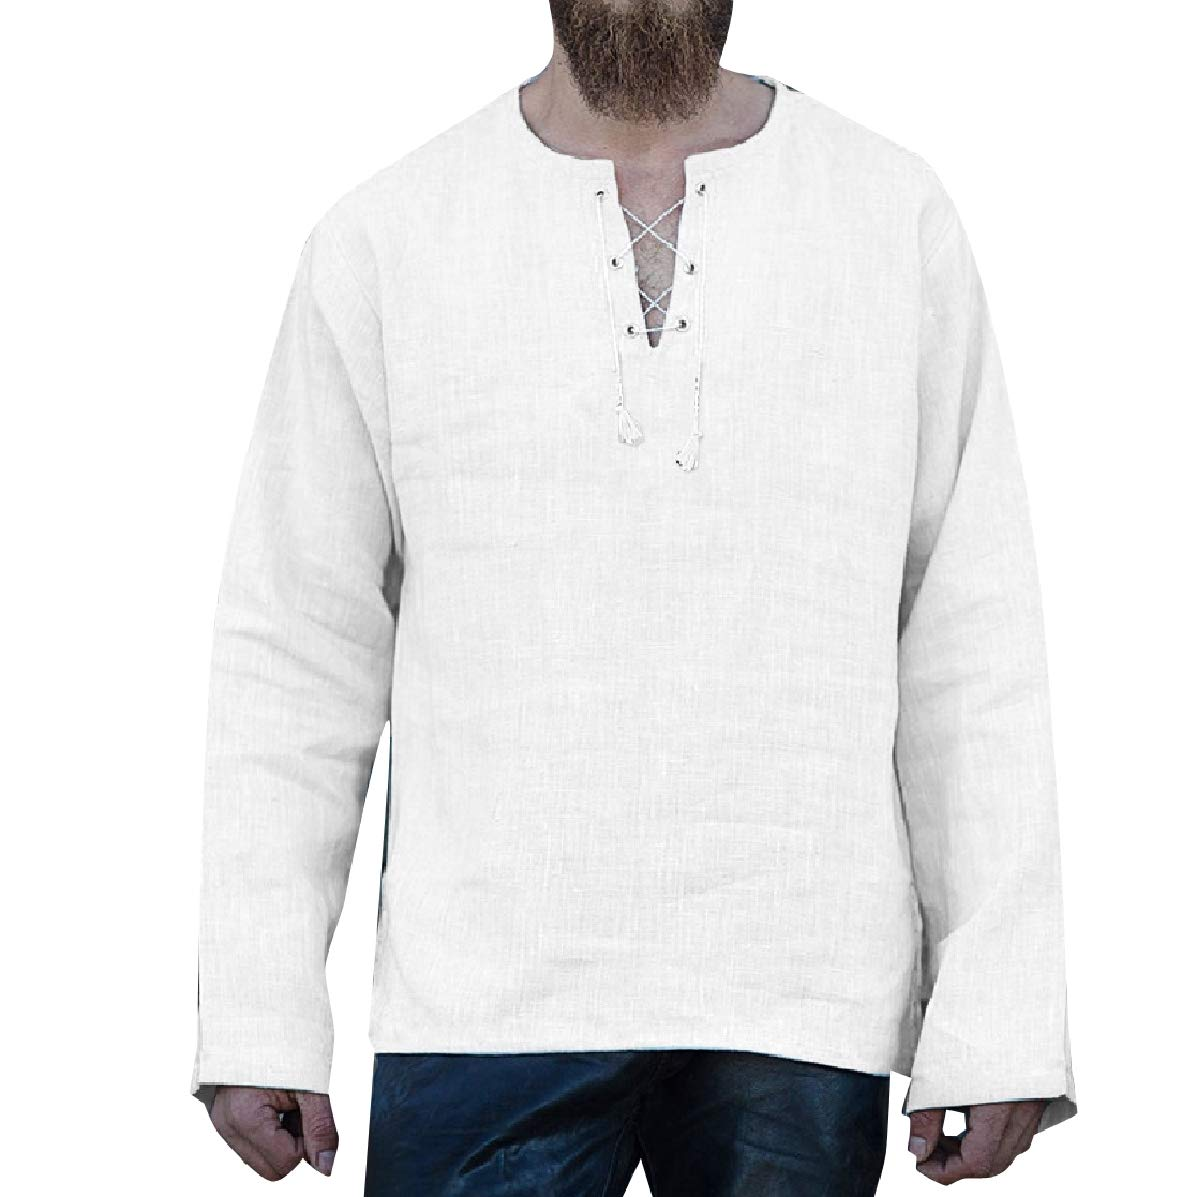 YUNY Men V Neck Ethnic Style Loose Solid-Colored Relaxed Tees Top White M